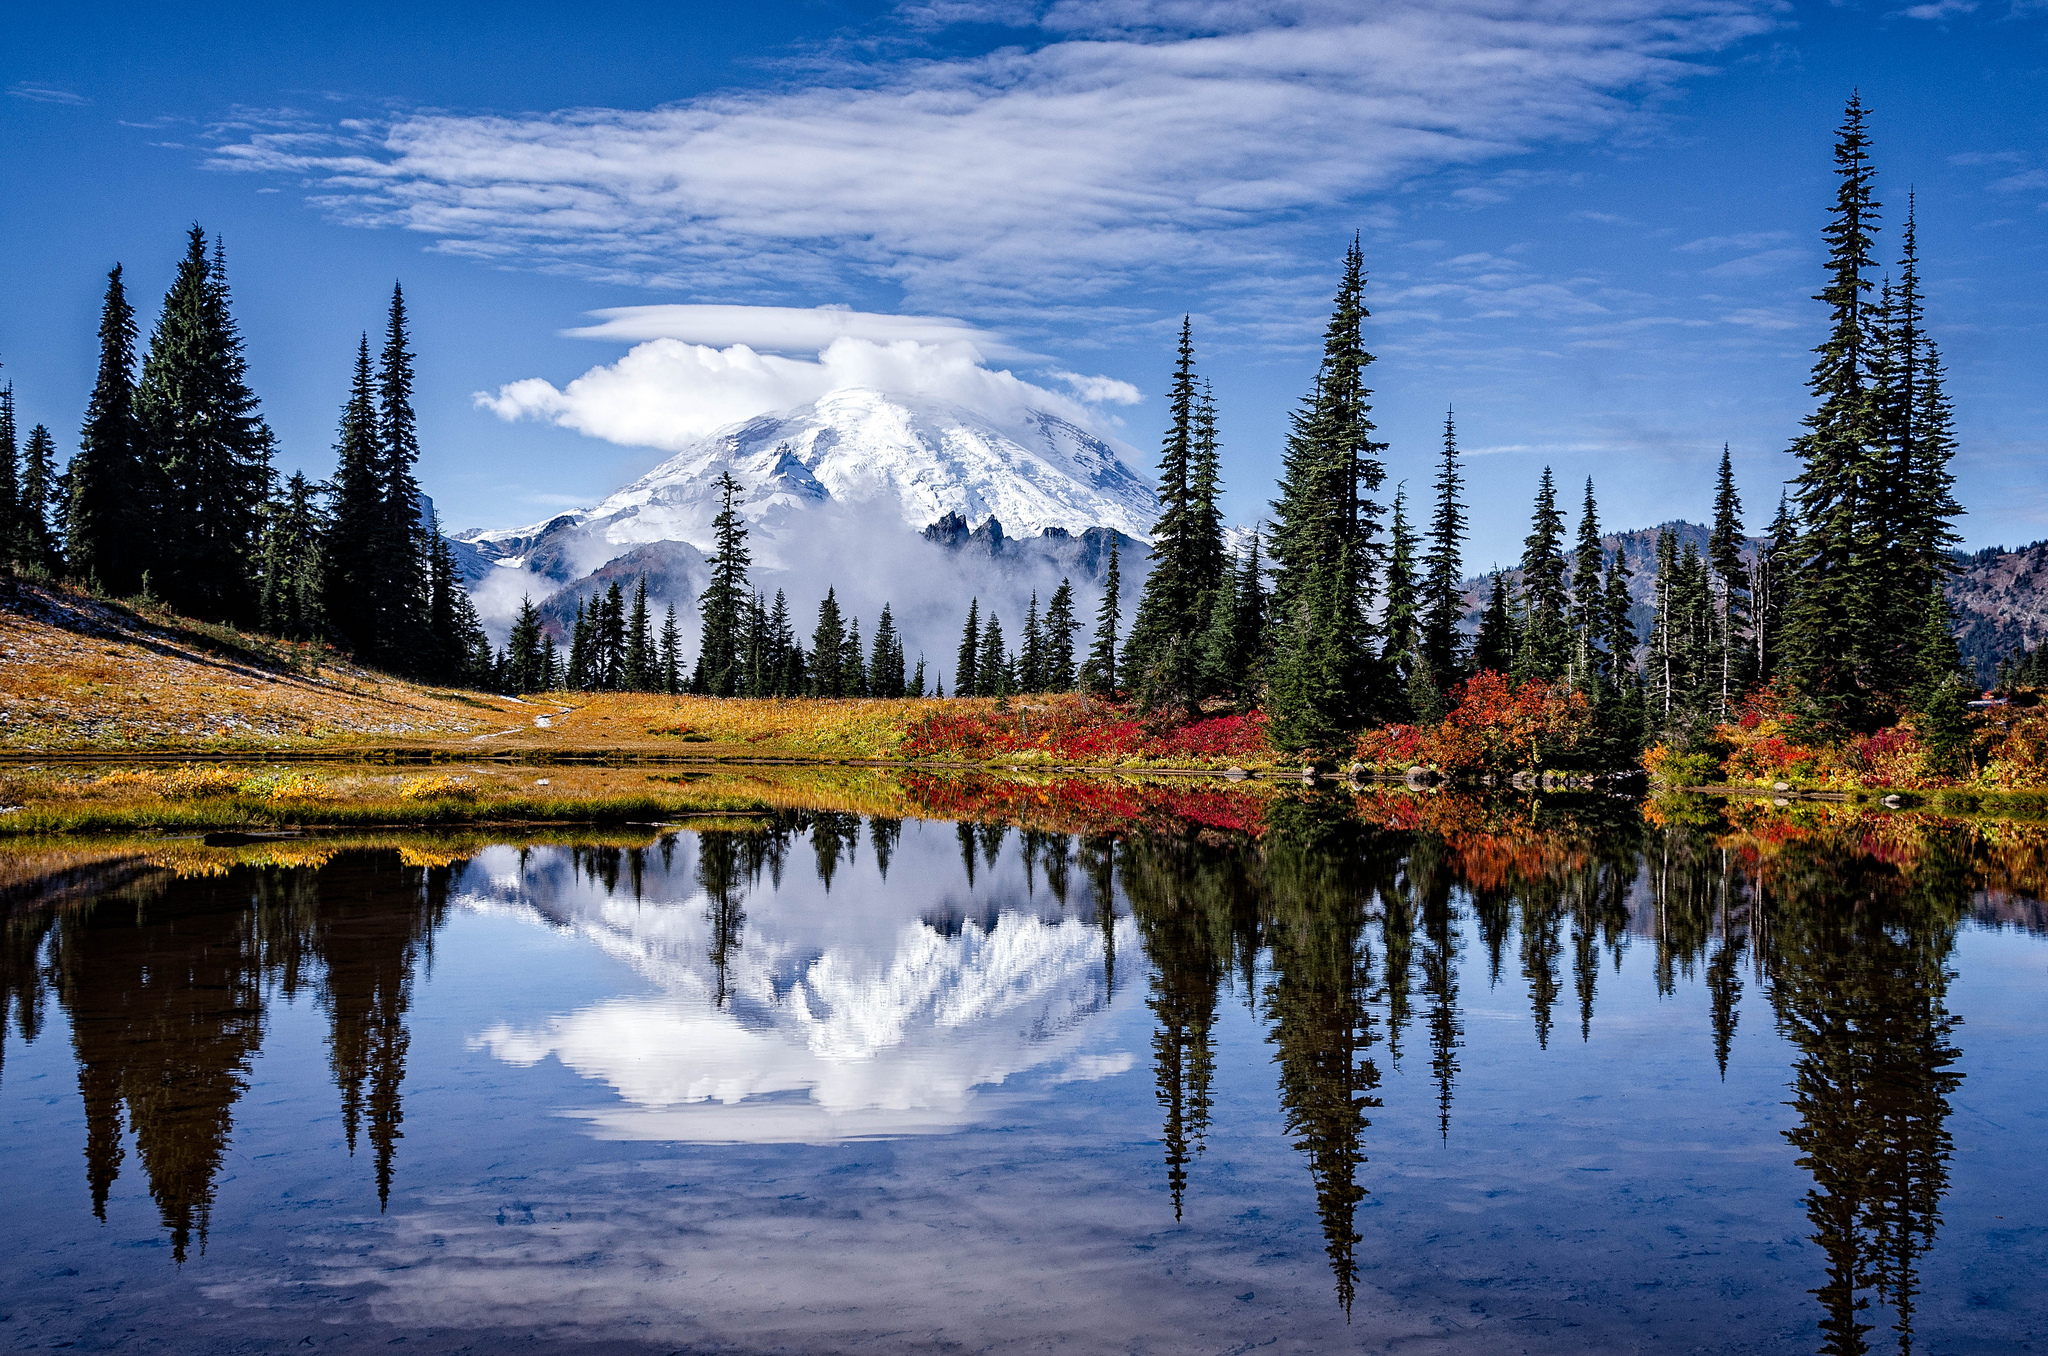 Fall Colorado Wallpaper Lake Tipsoo The One Hikeable Lake In Washington That S